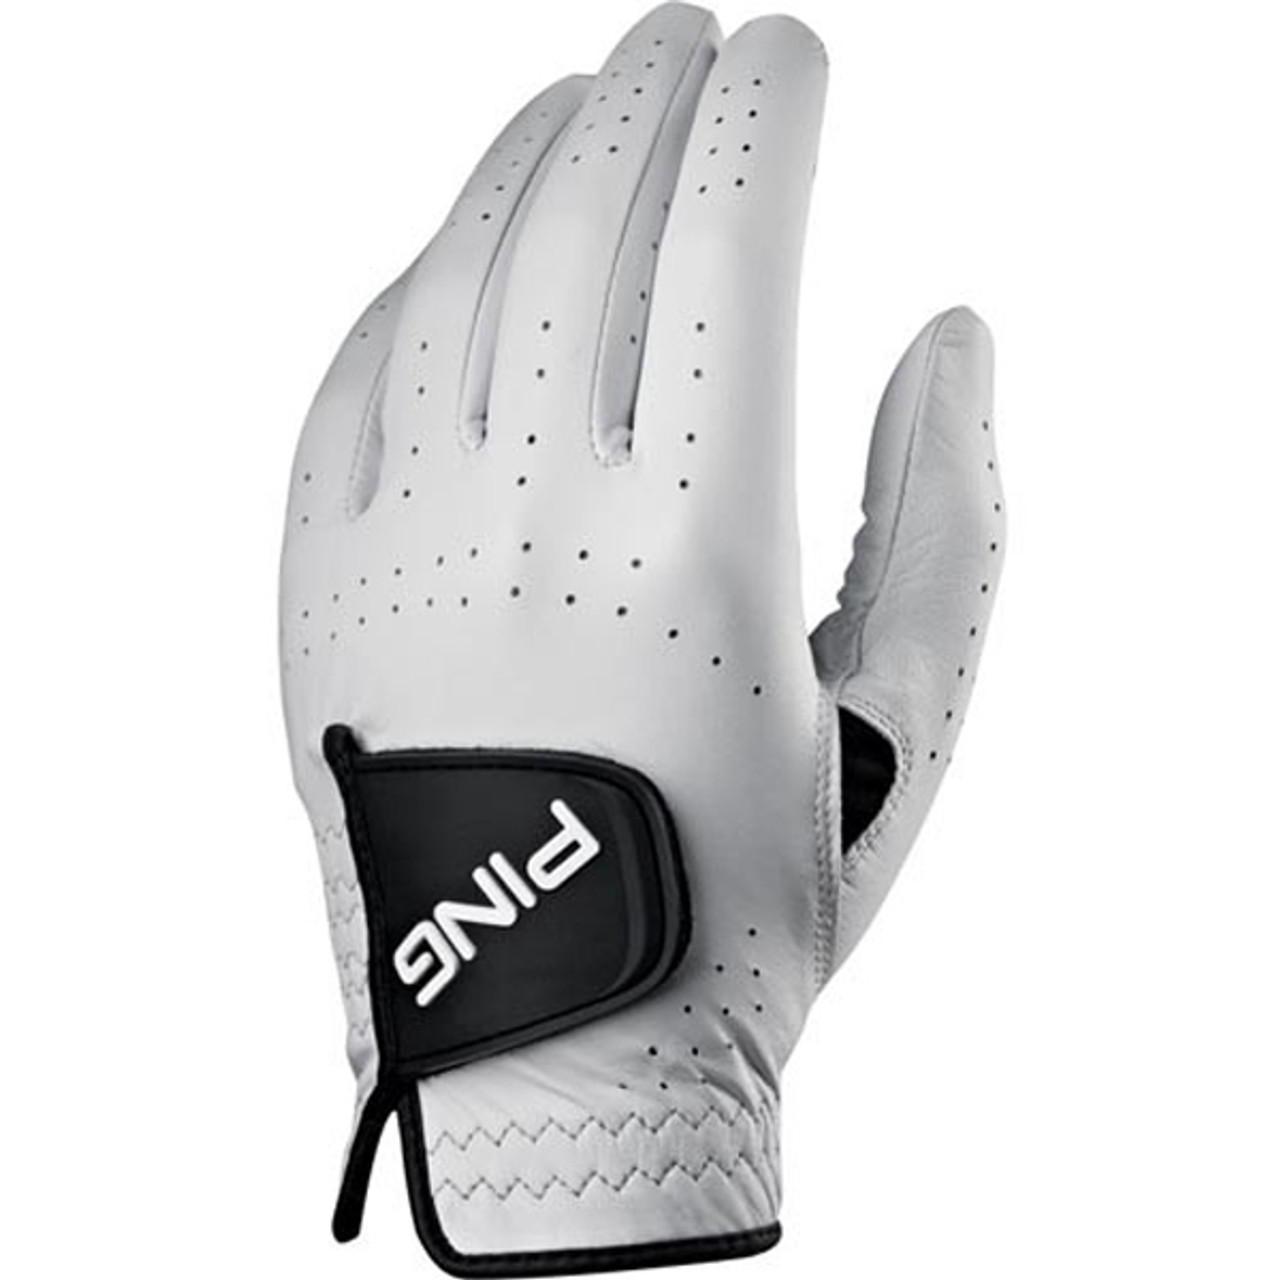 Ping Tour Golf Gloves Clearance